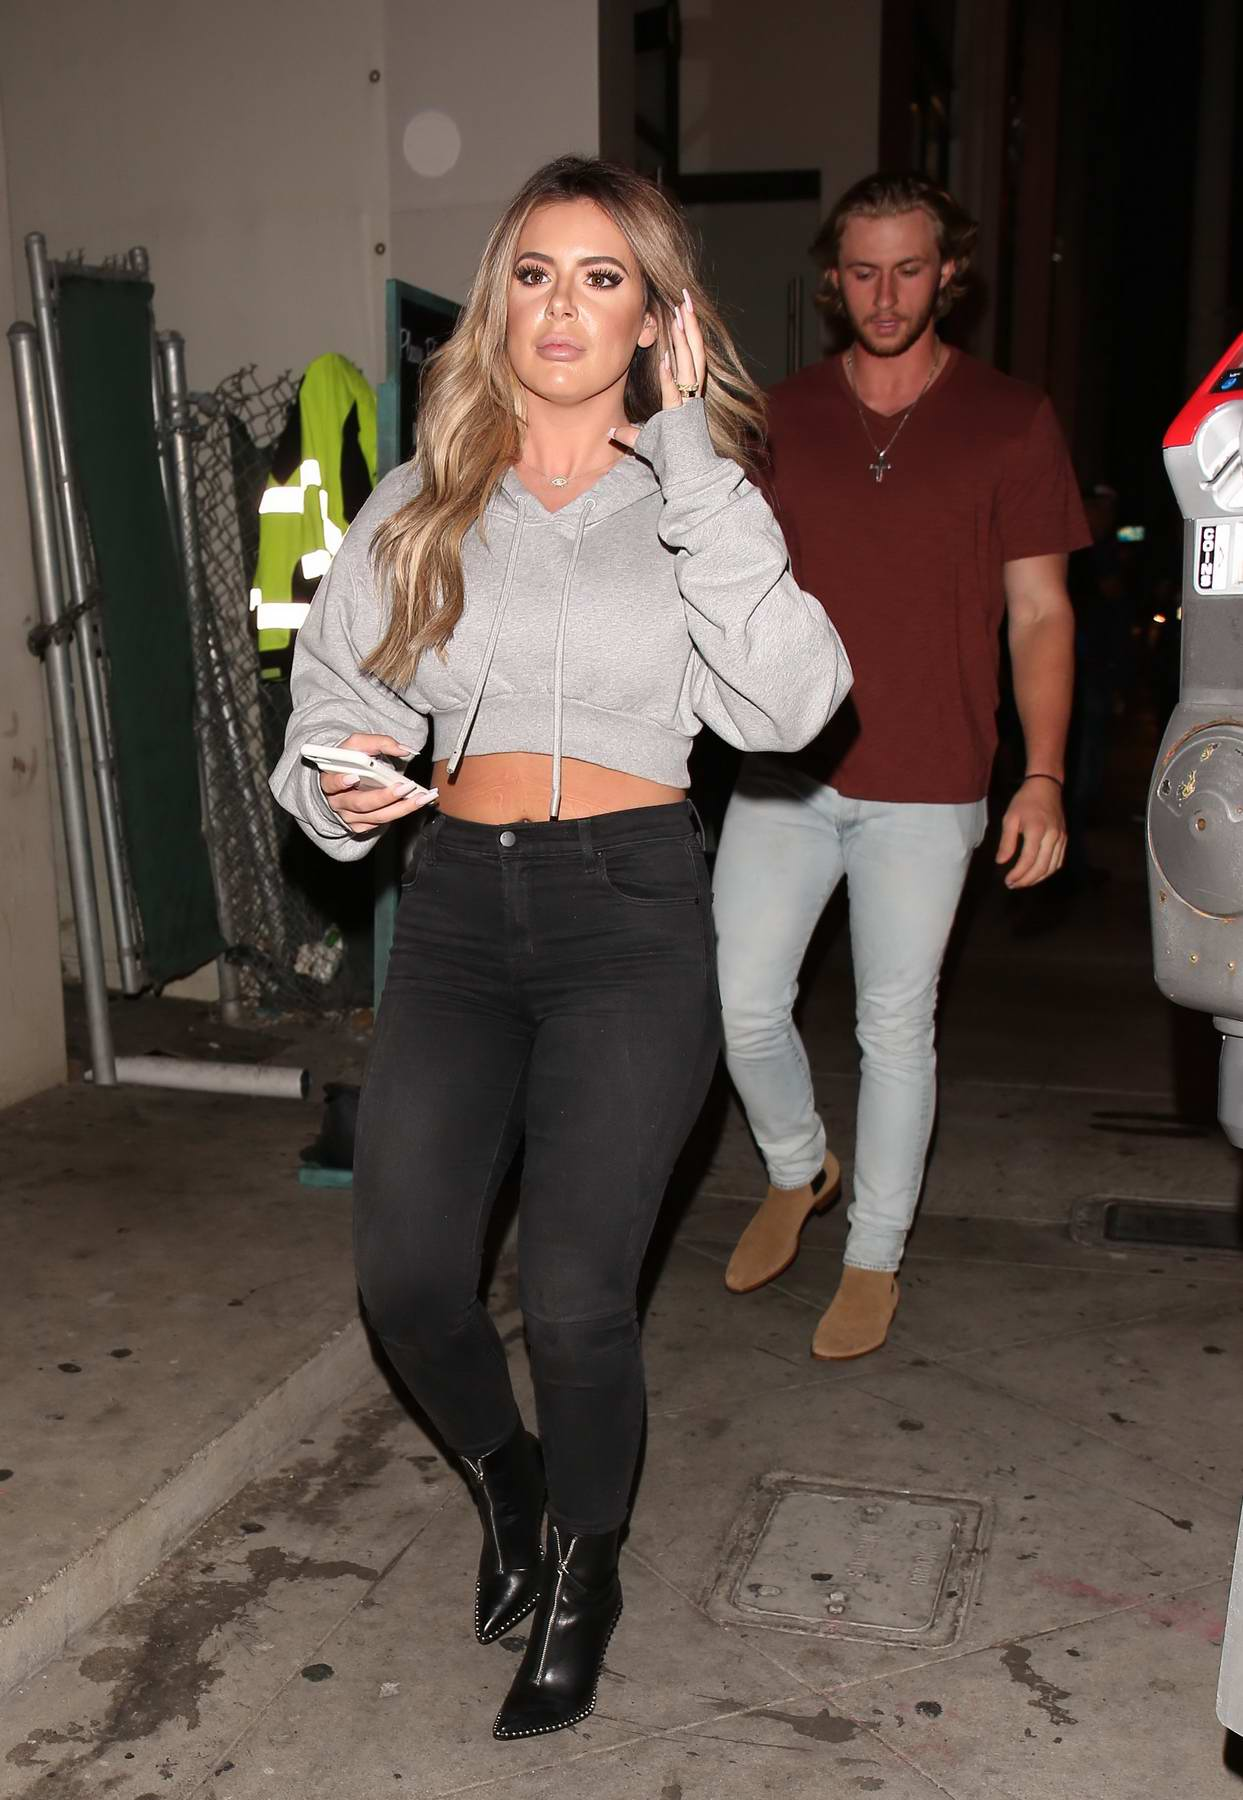 Brielle Biermann has a dinner date with her boyfriend at Catch in Los Angeles